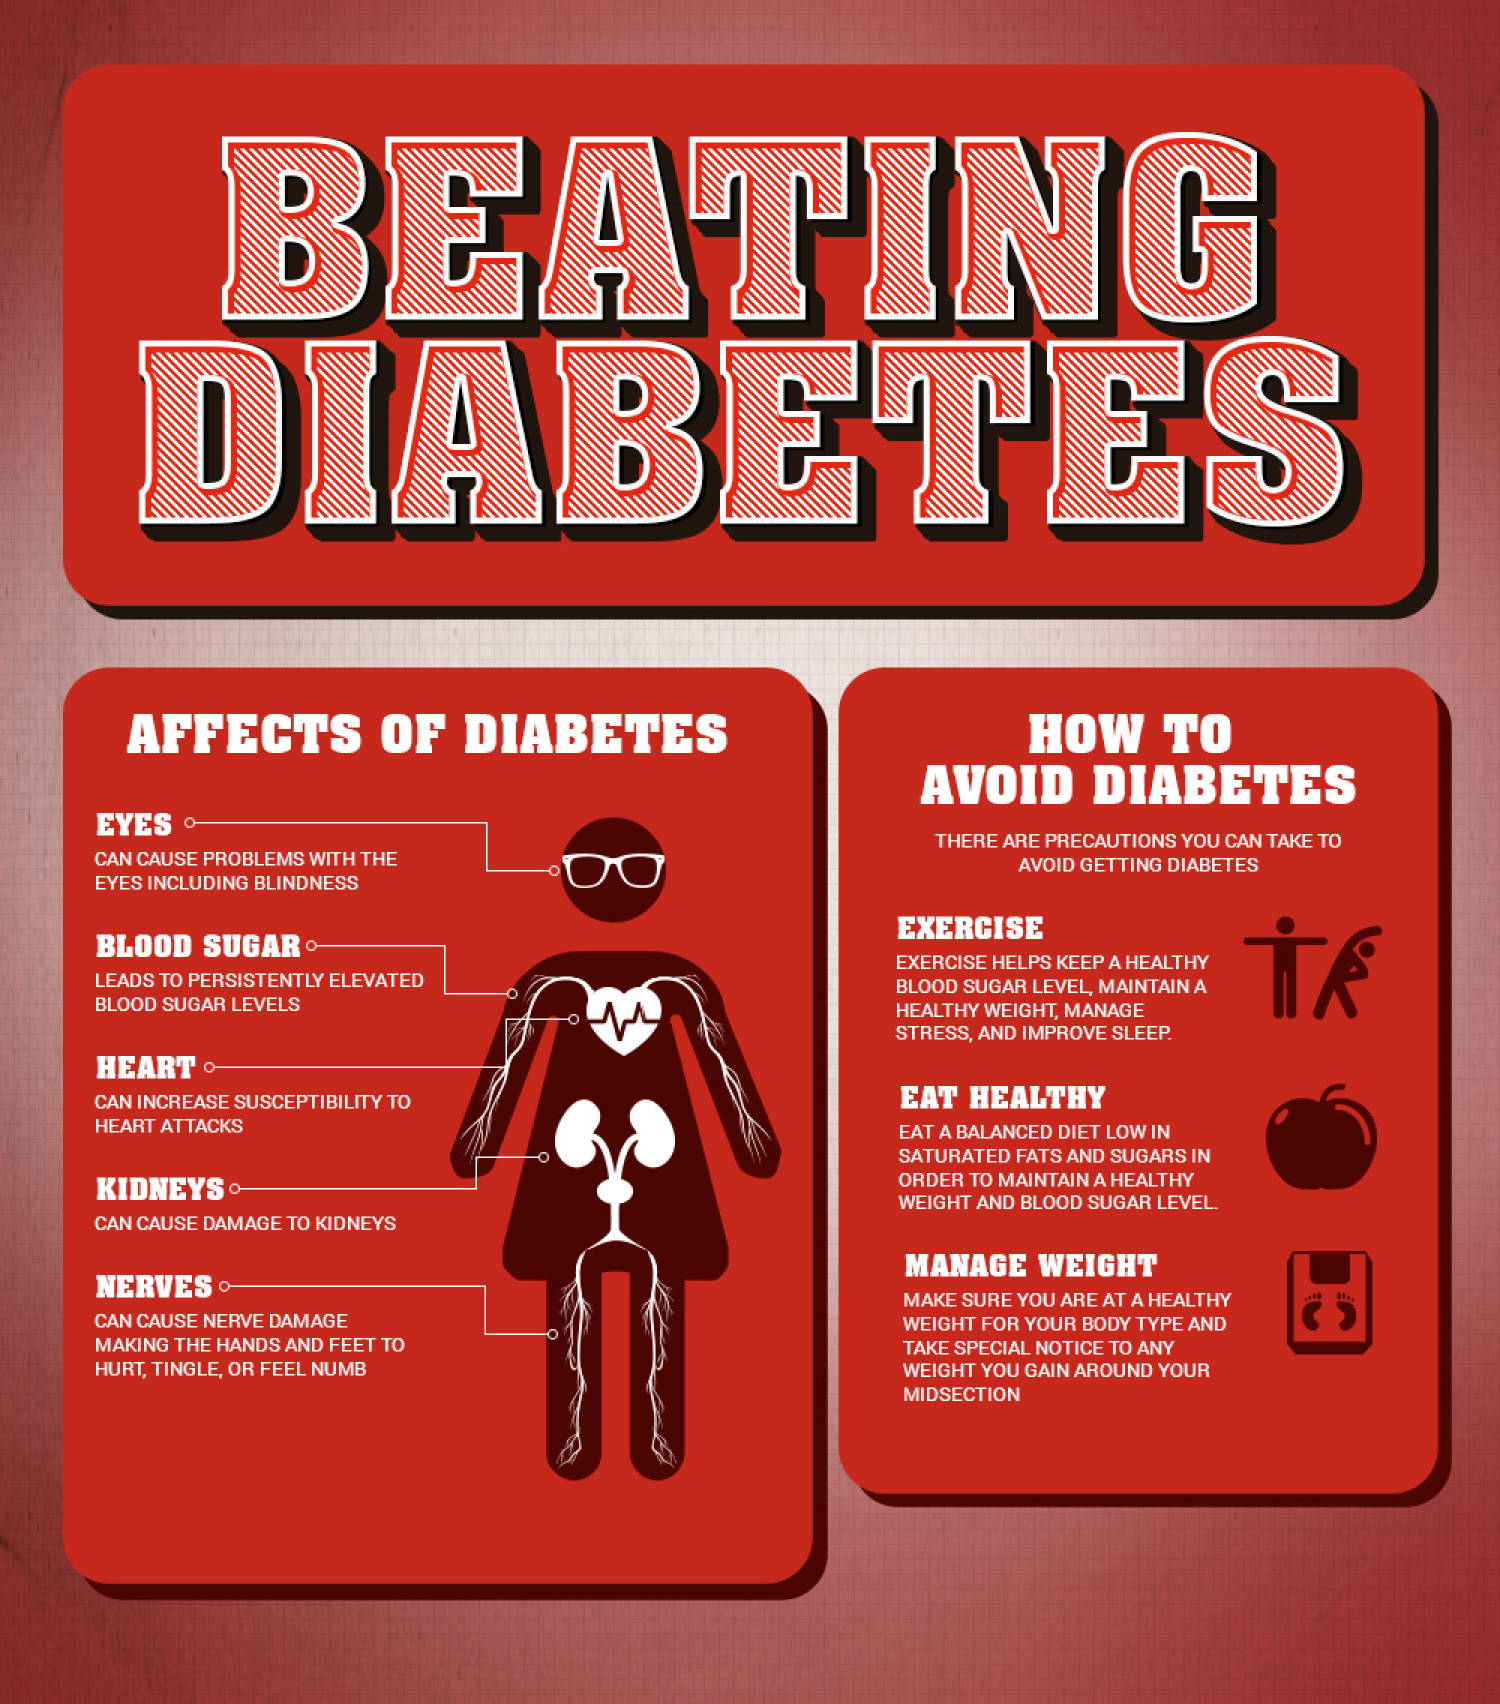 Affects of Diabetes Infographic